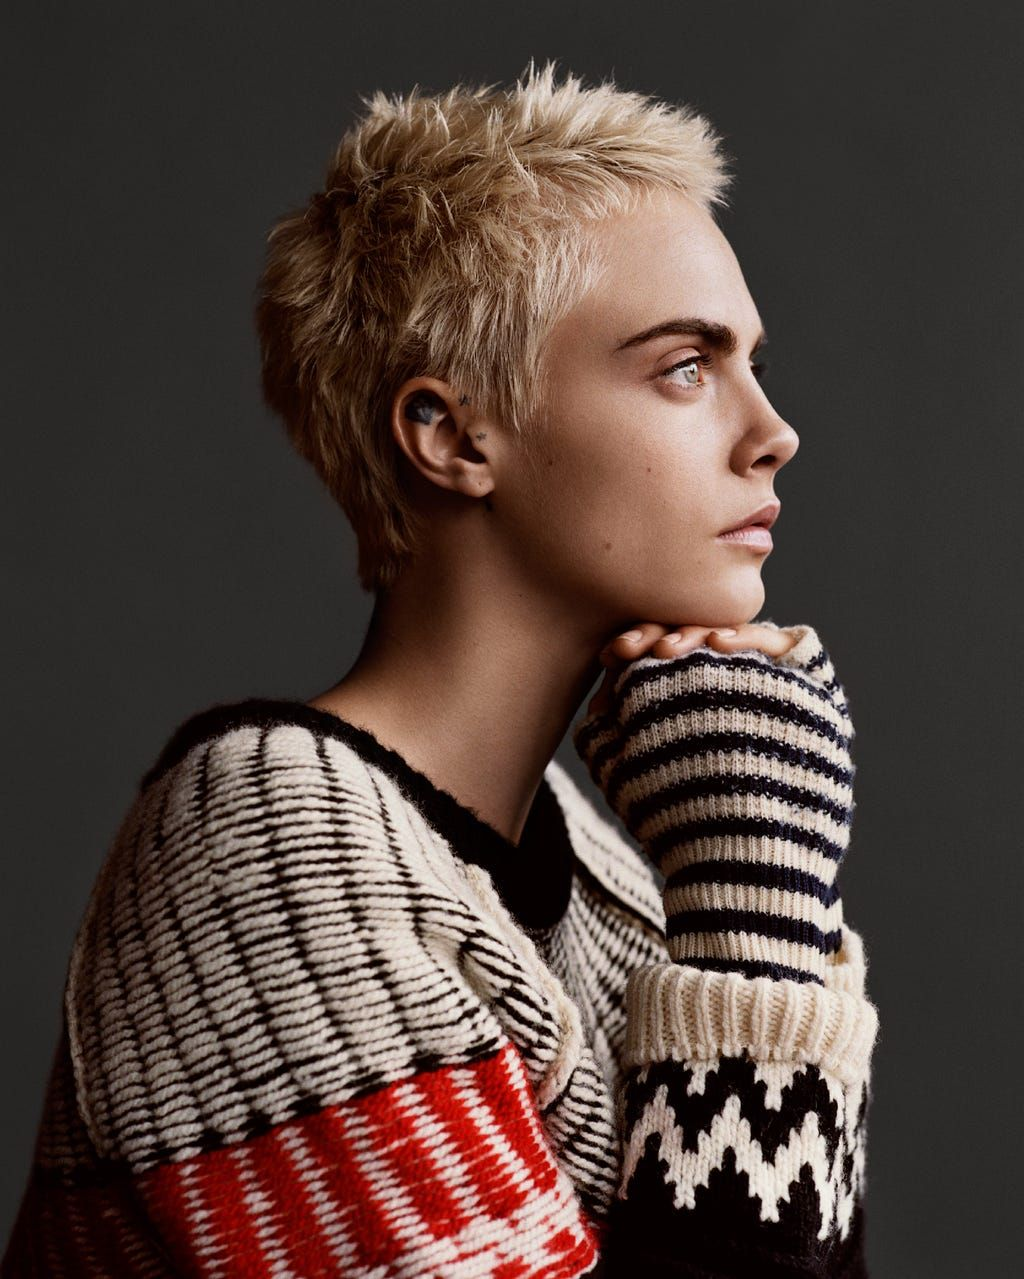 Cara Delevingne On Style, Womanhood & Being Part Of The Burberry Family – faces